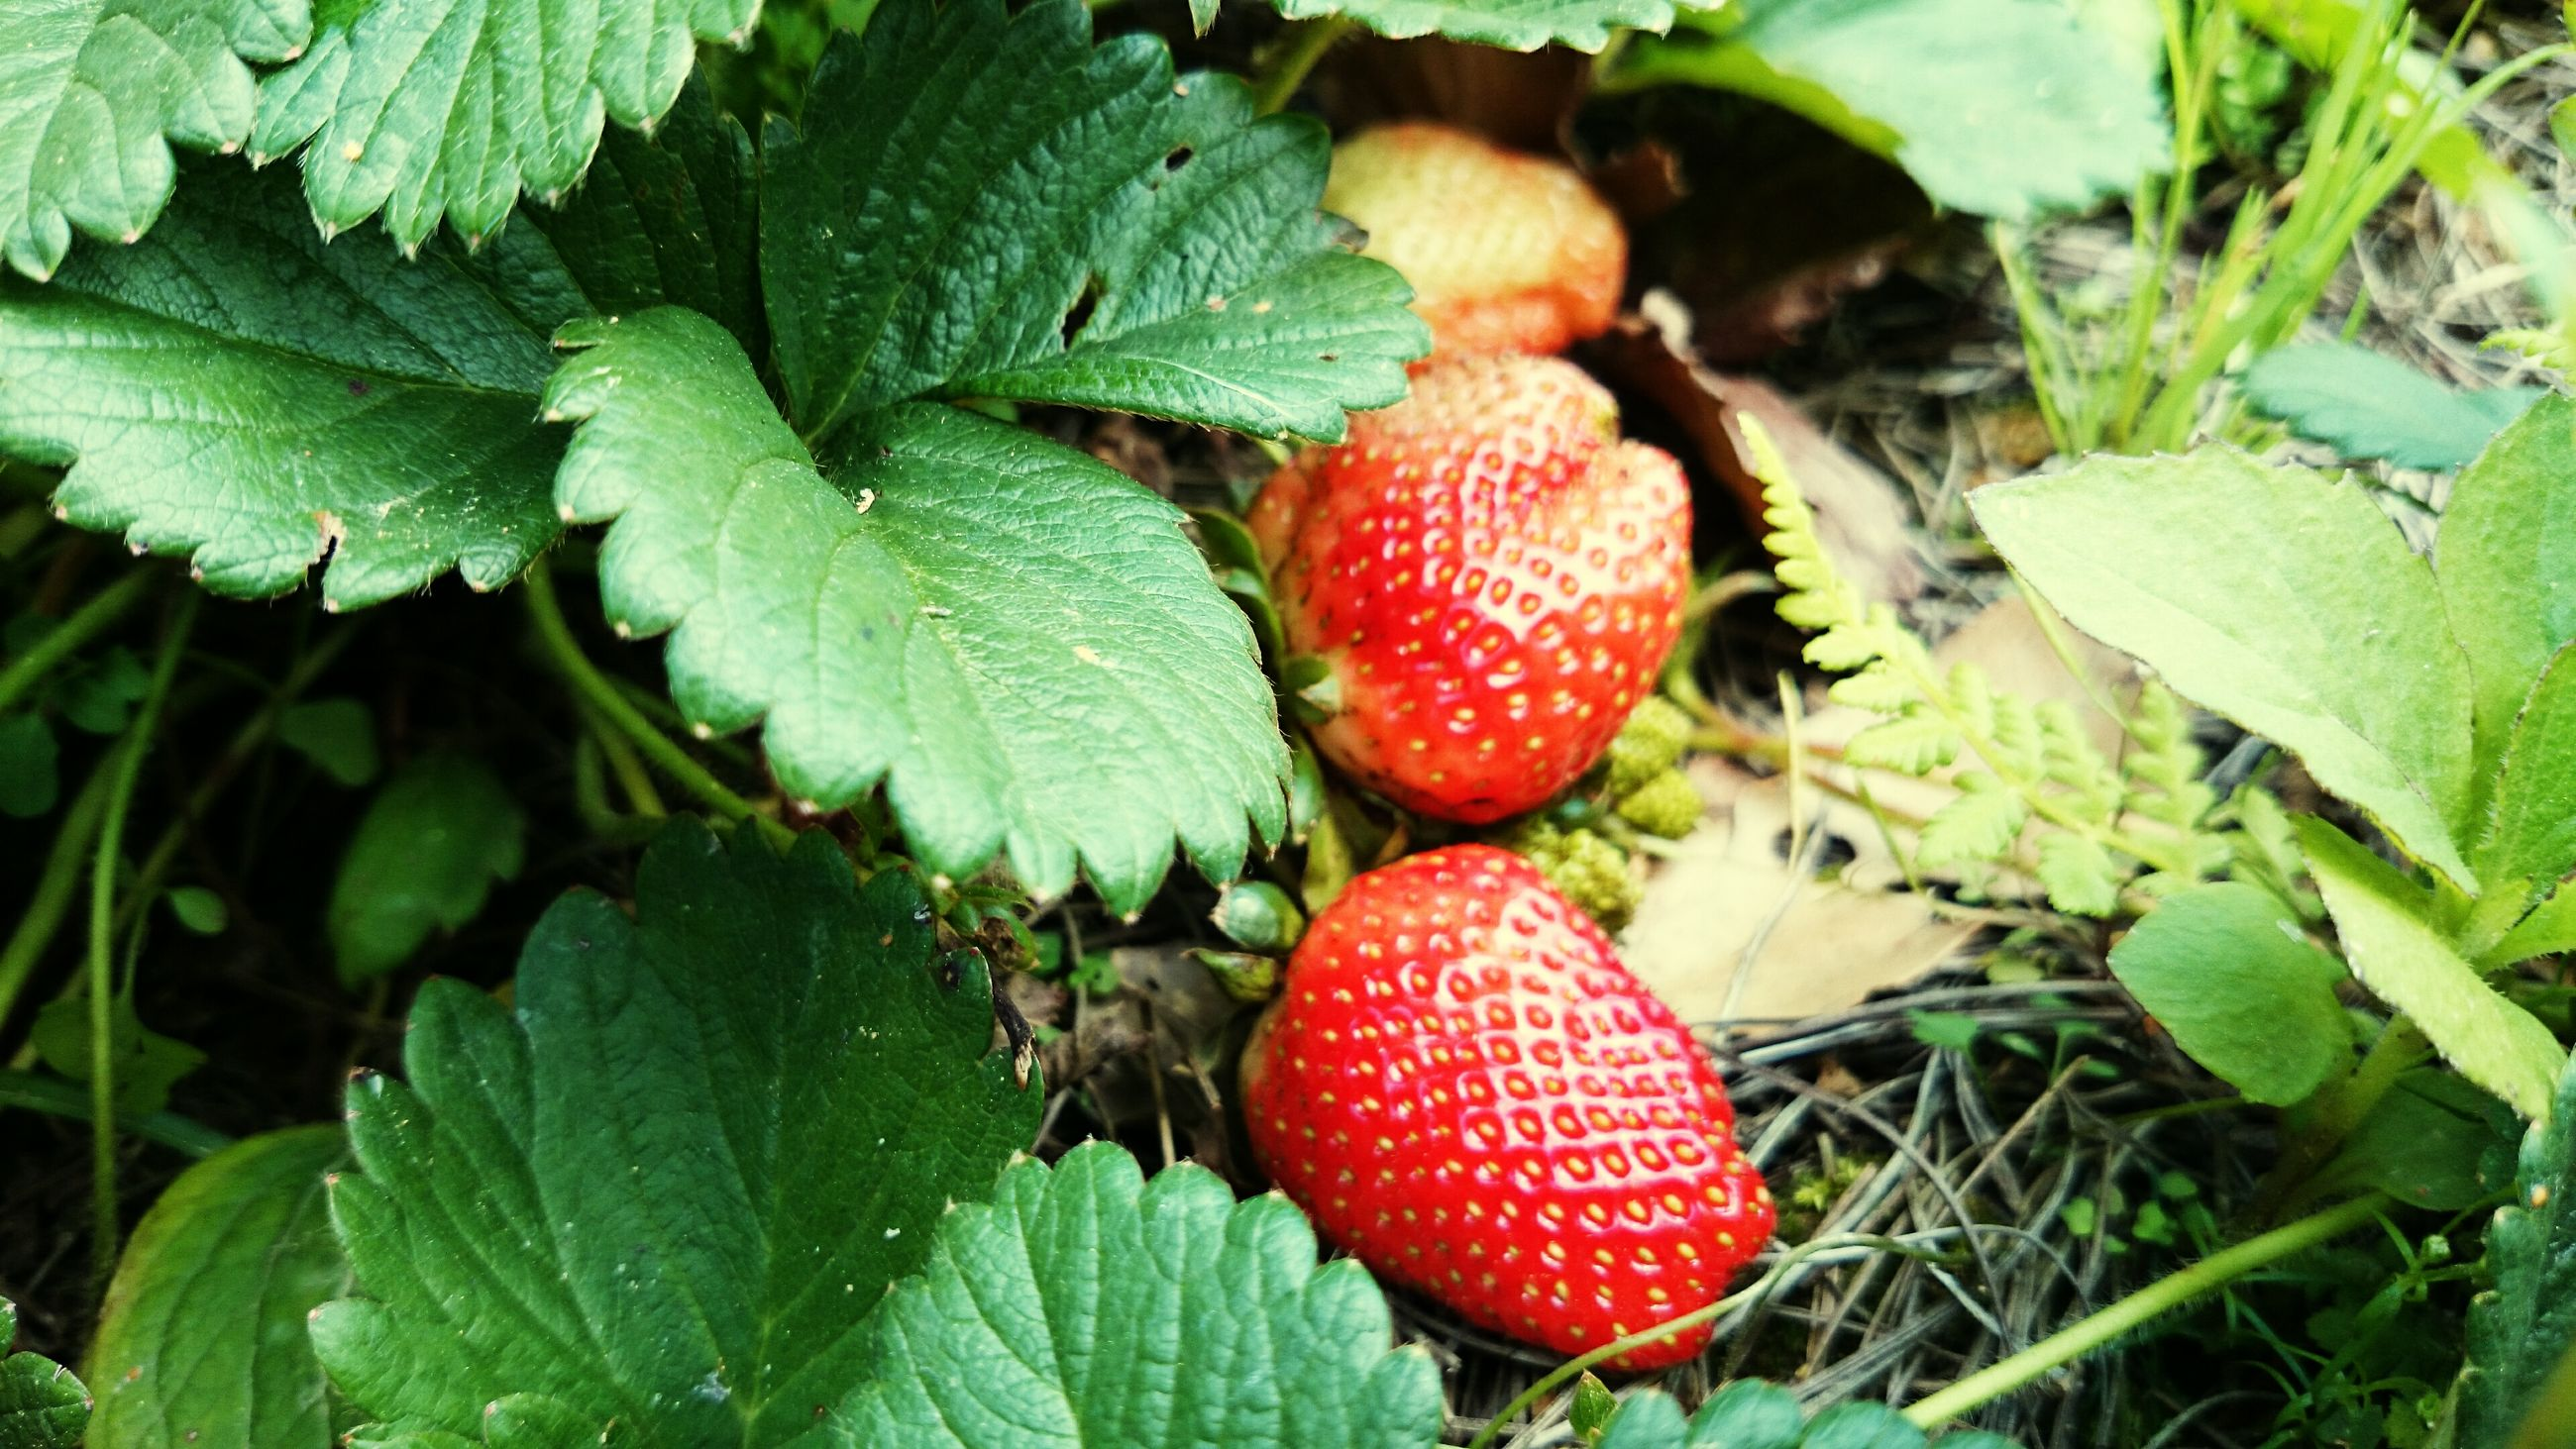 fruit, food and drink, food, red, healthy eating, leaf, freshness, growth, green color, ripe, close-up, tree, berry fruit, growing, nature, agriculture, plant, strawberry, outdoors, day